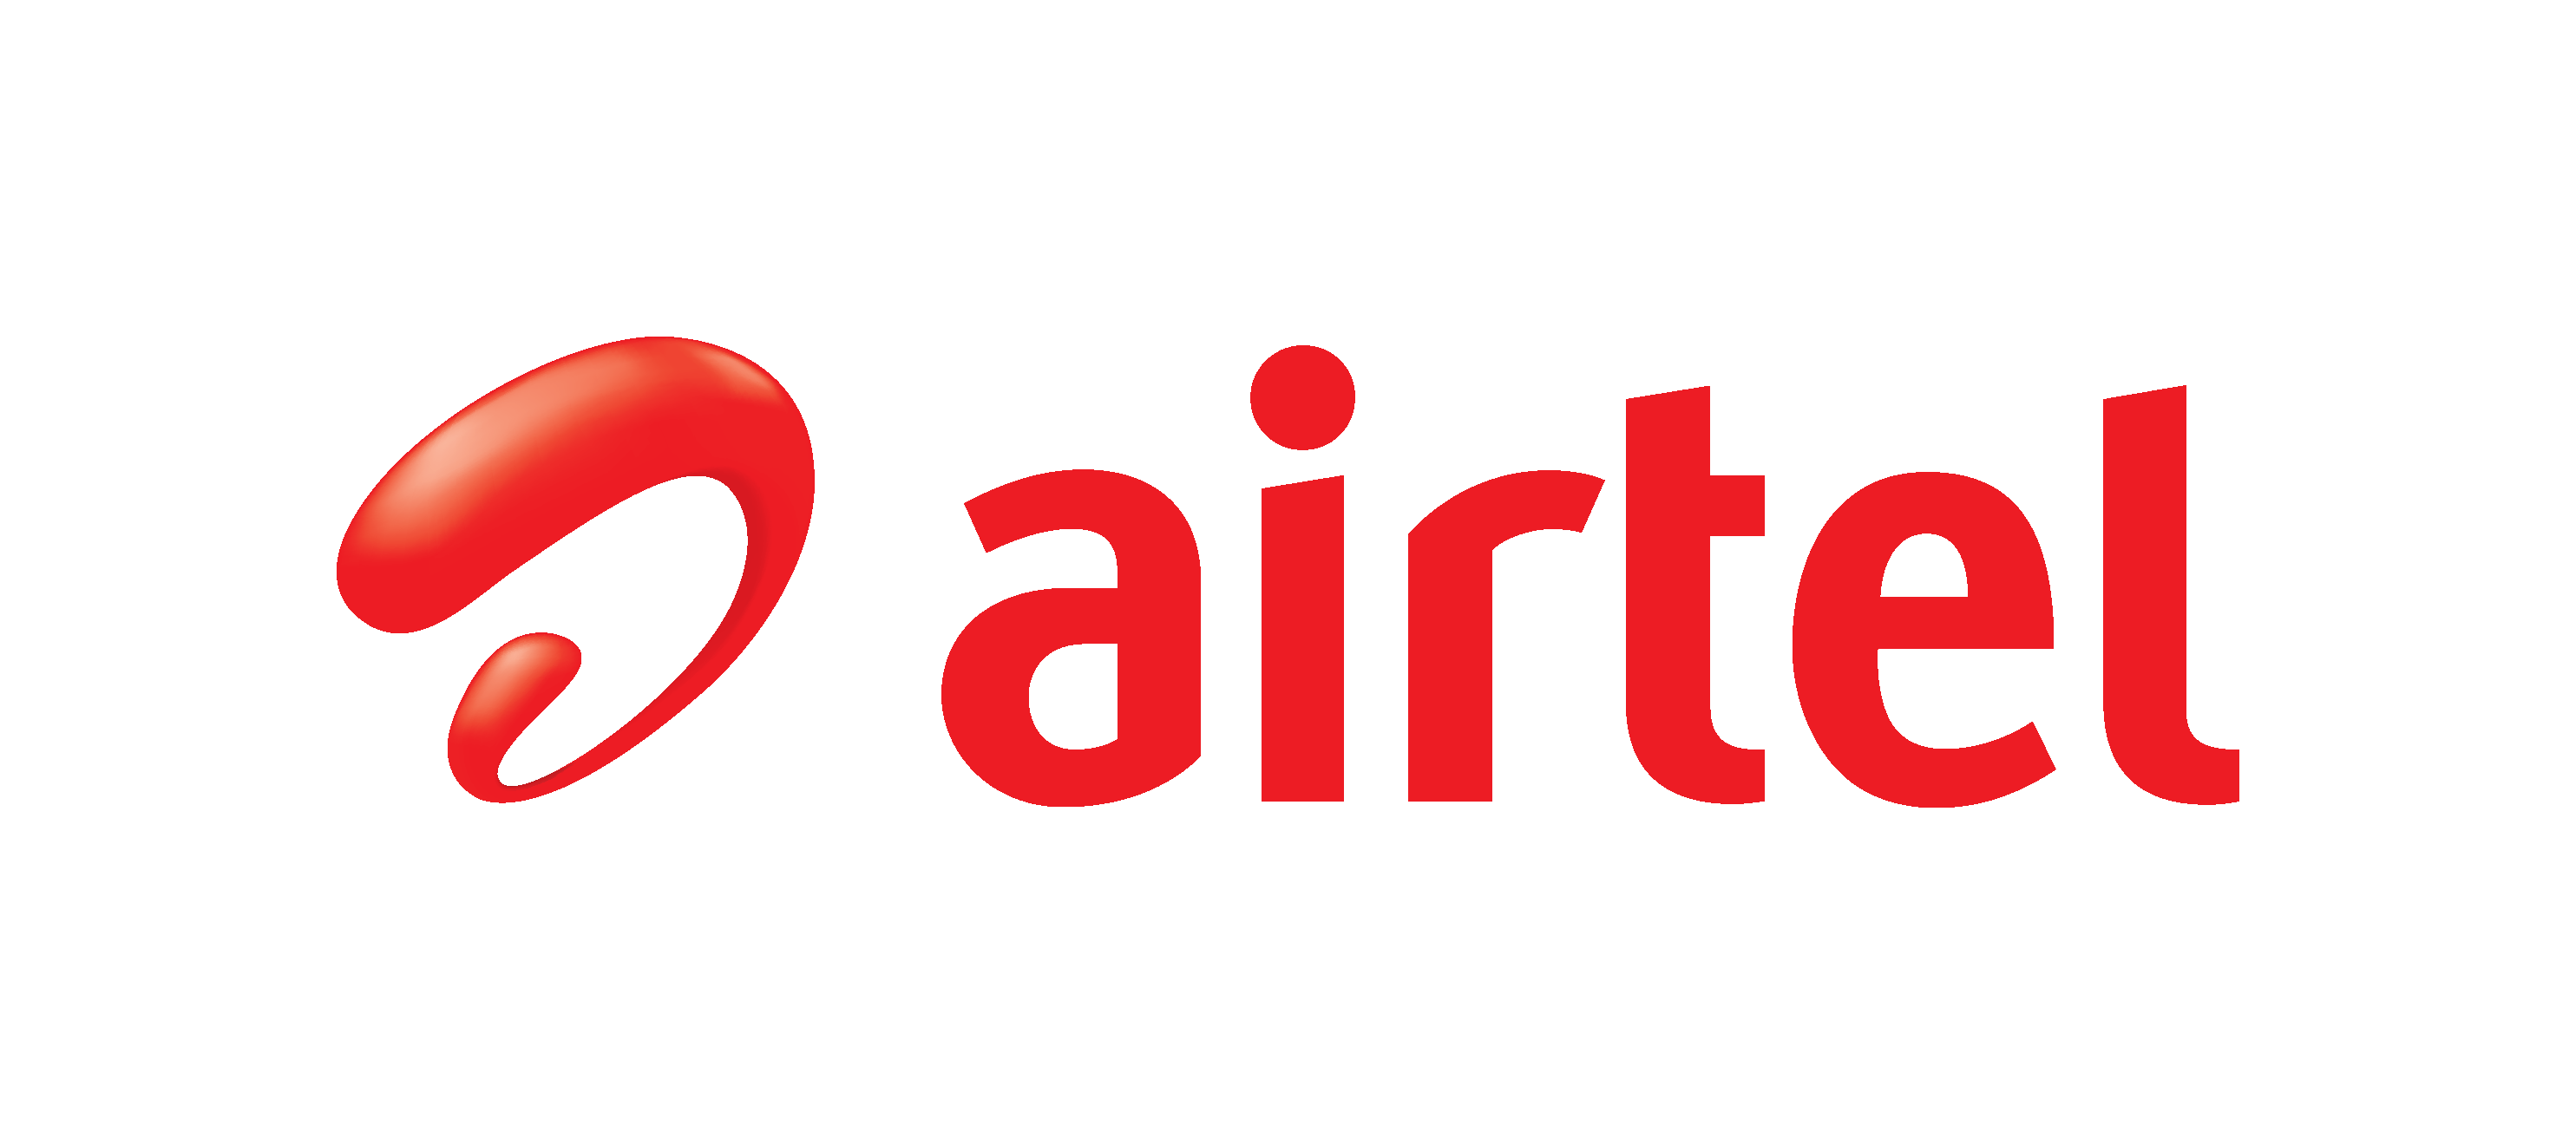 http://www.mrsimcard.com/aa/images/airtellogo.png